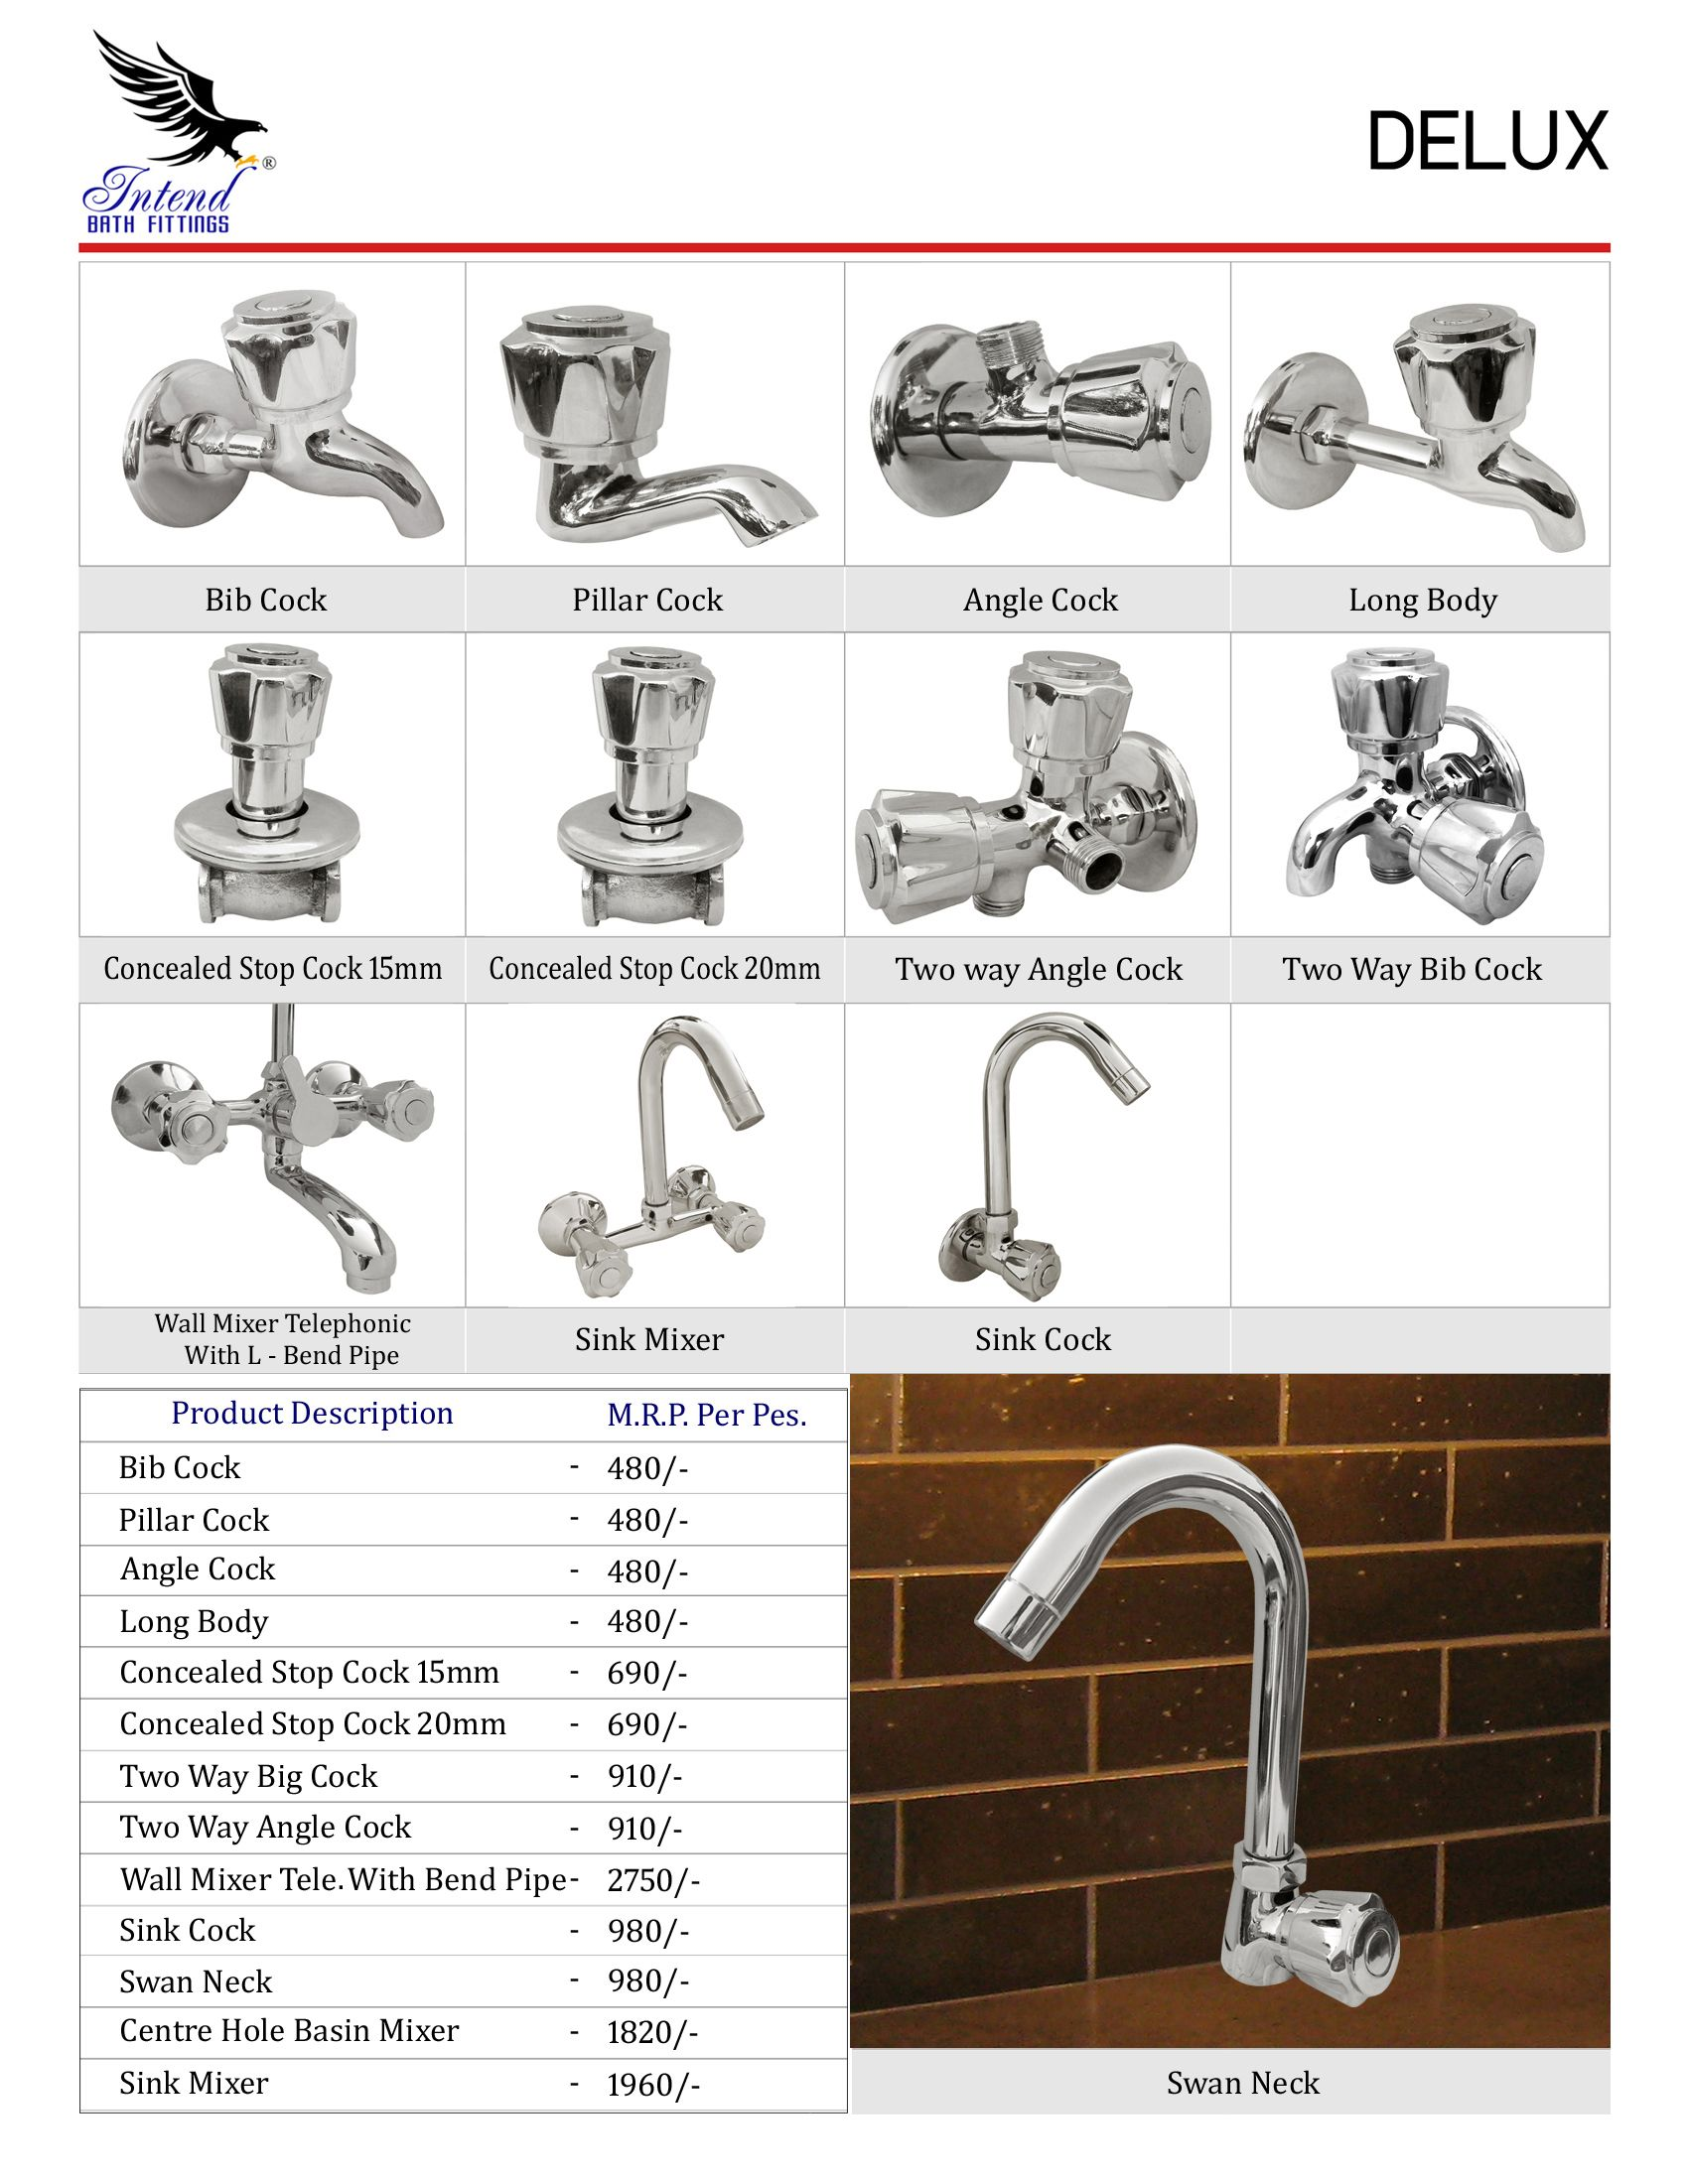 Delux Products Range From Intend Bath Fittings Bath Accessories Fittings Bath